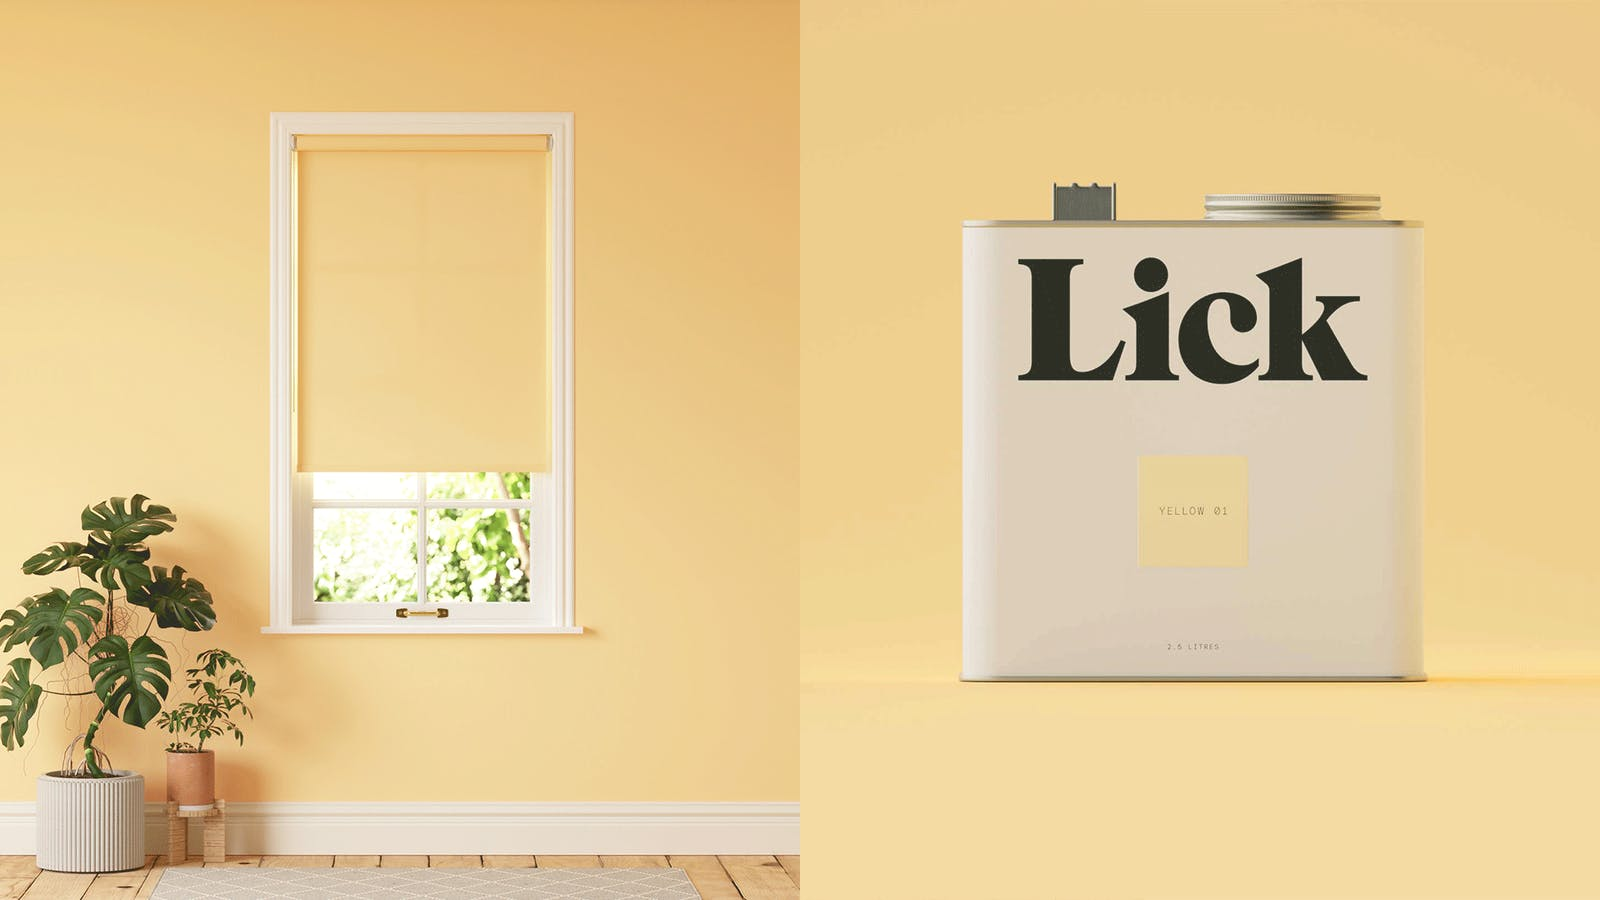 Lick Yellow 01 roller blinds and Lick Yellow 01 tins